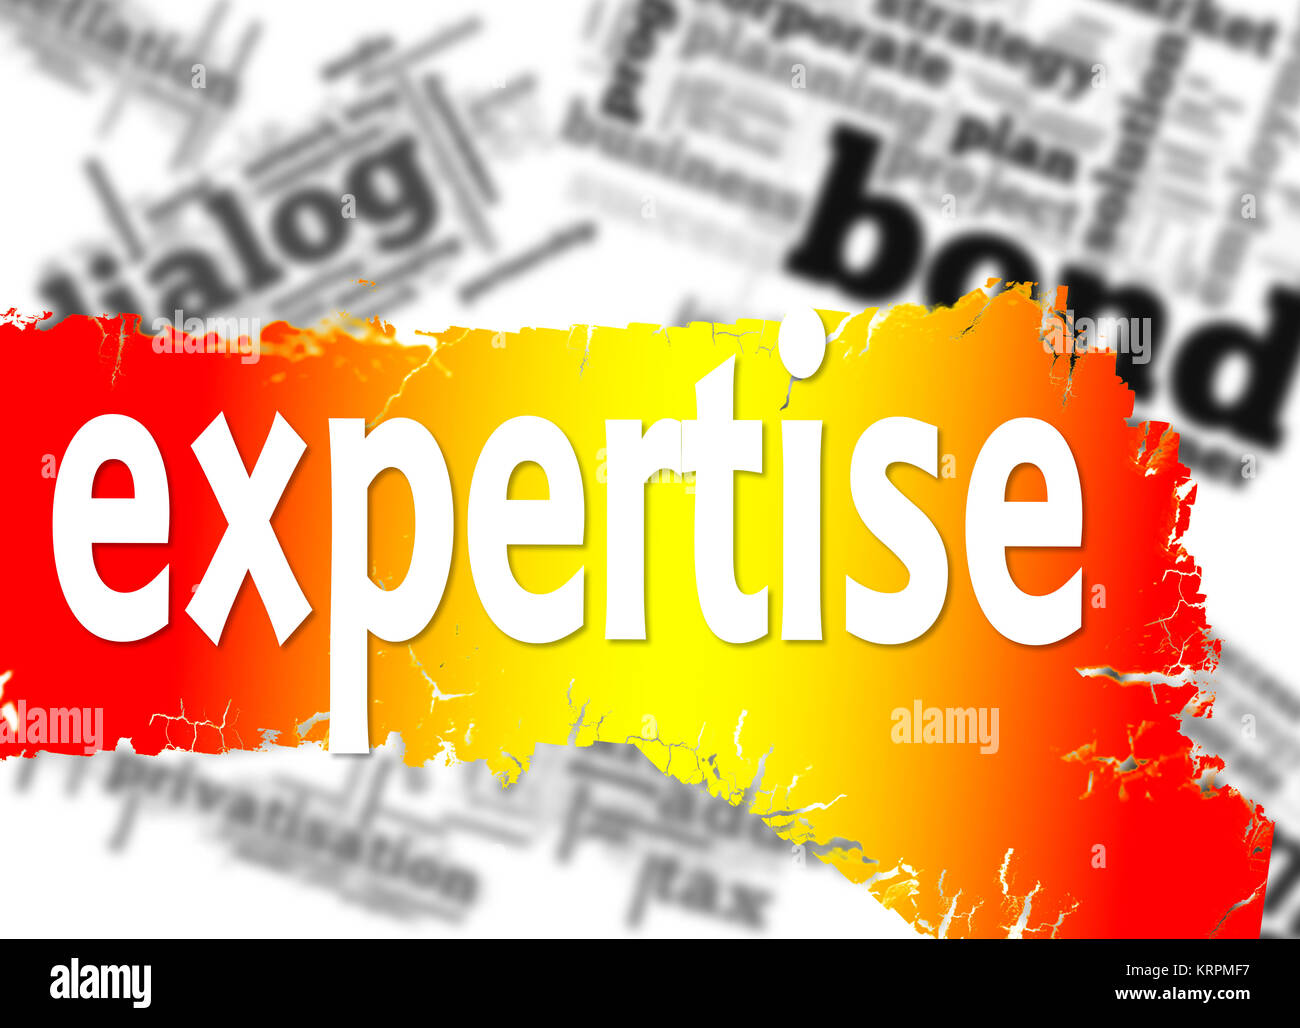 Word cloud with expertise word - Stock Image